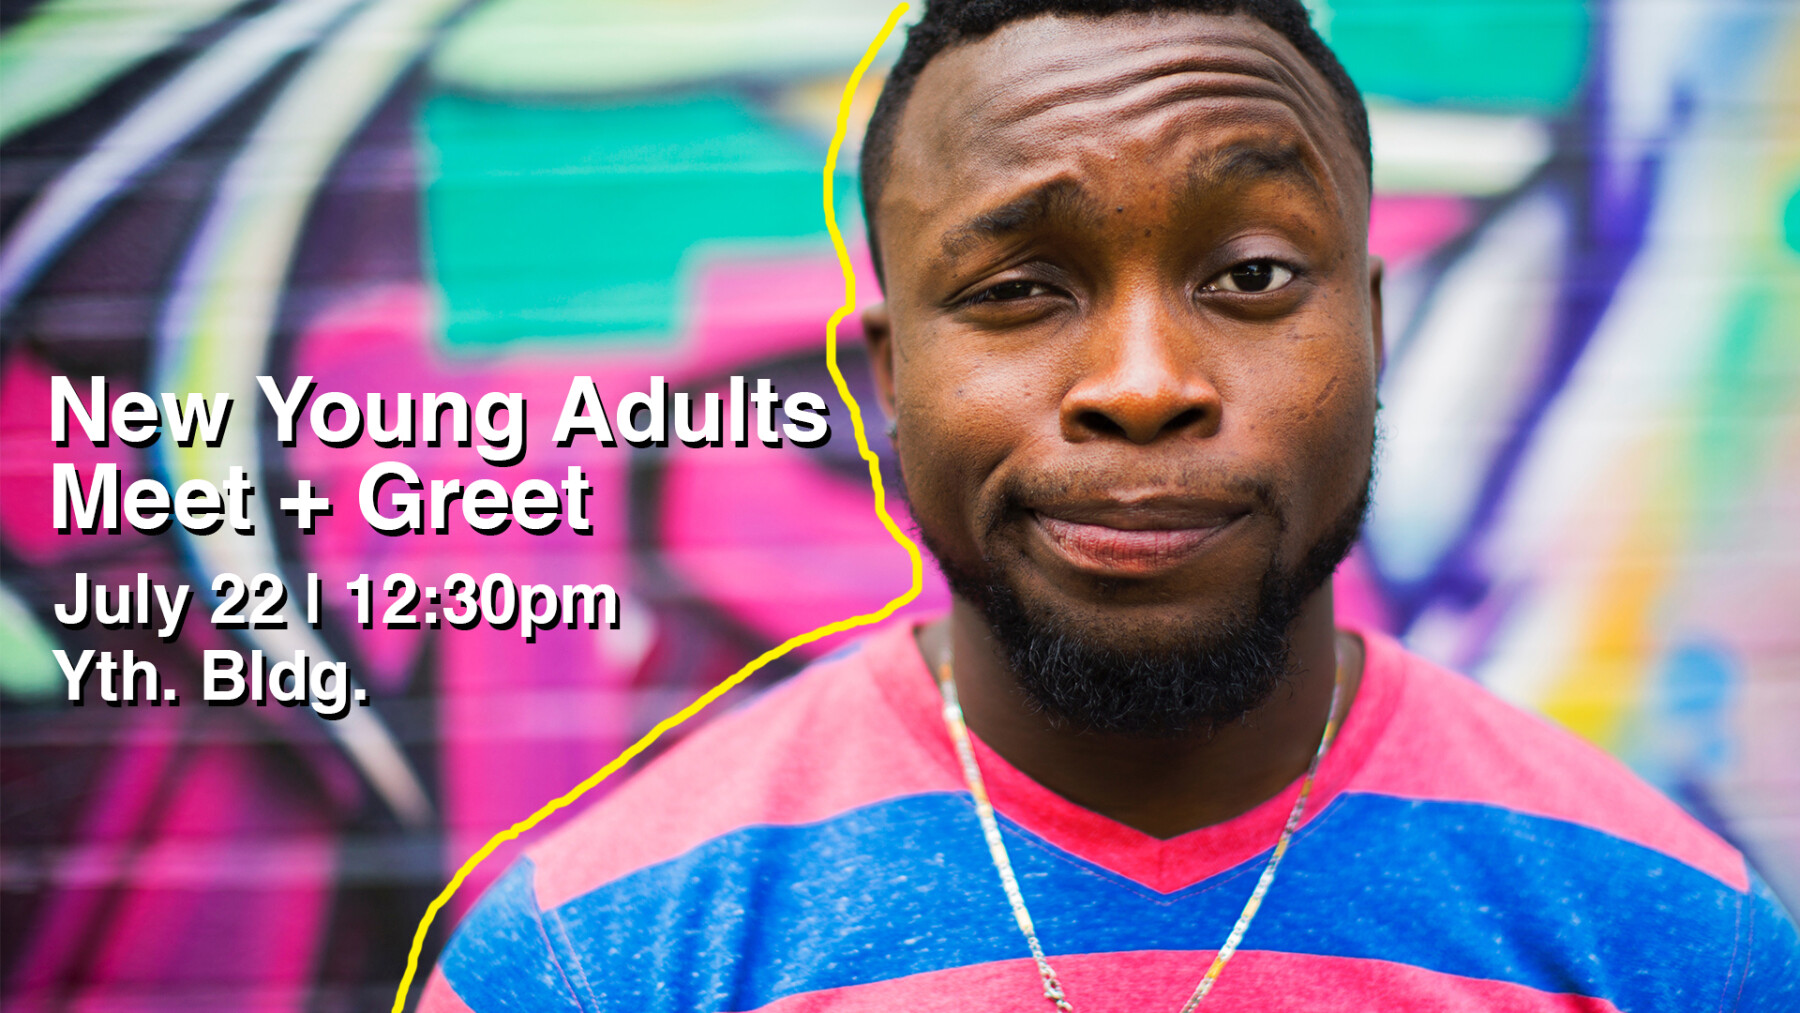 New Young Adults Meet + Greet